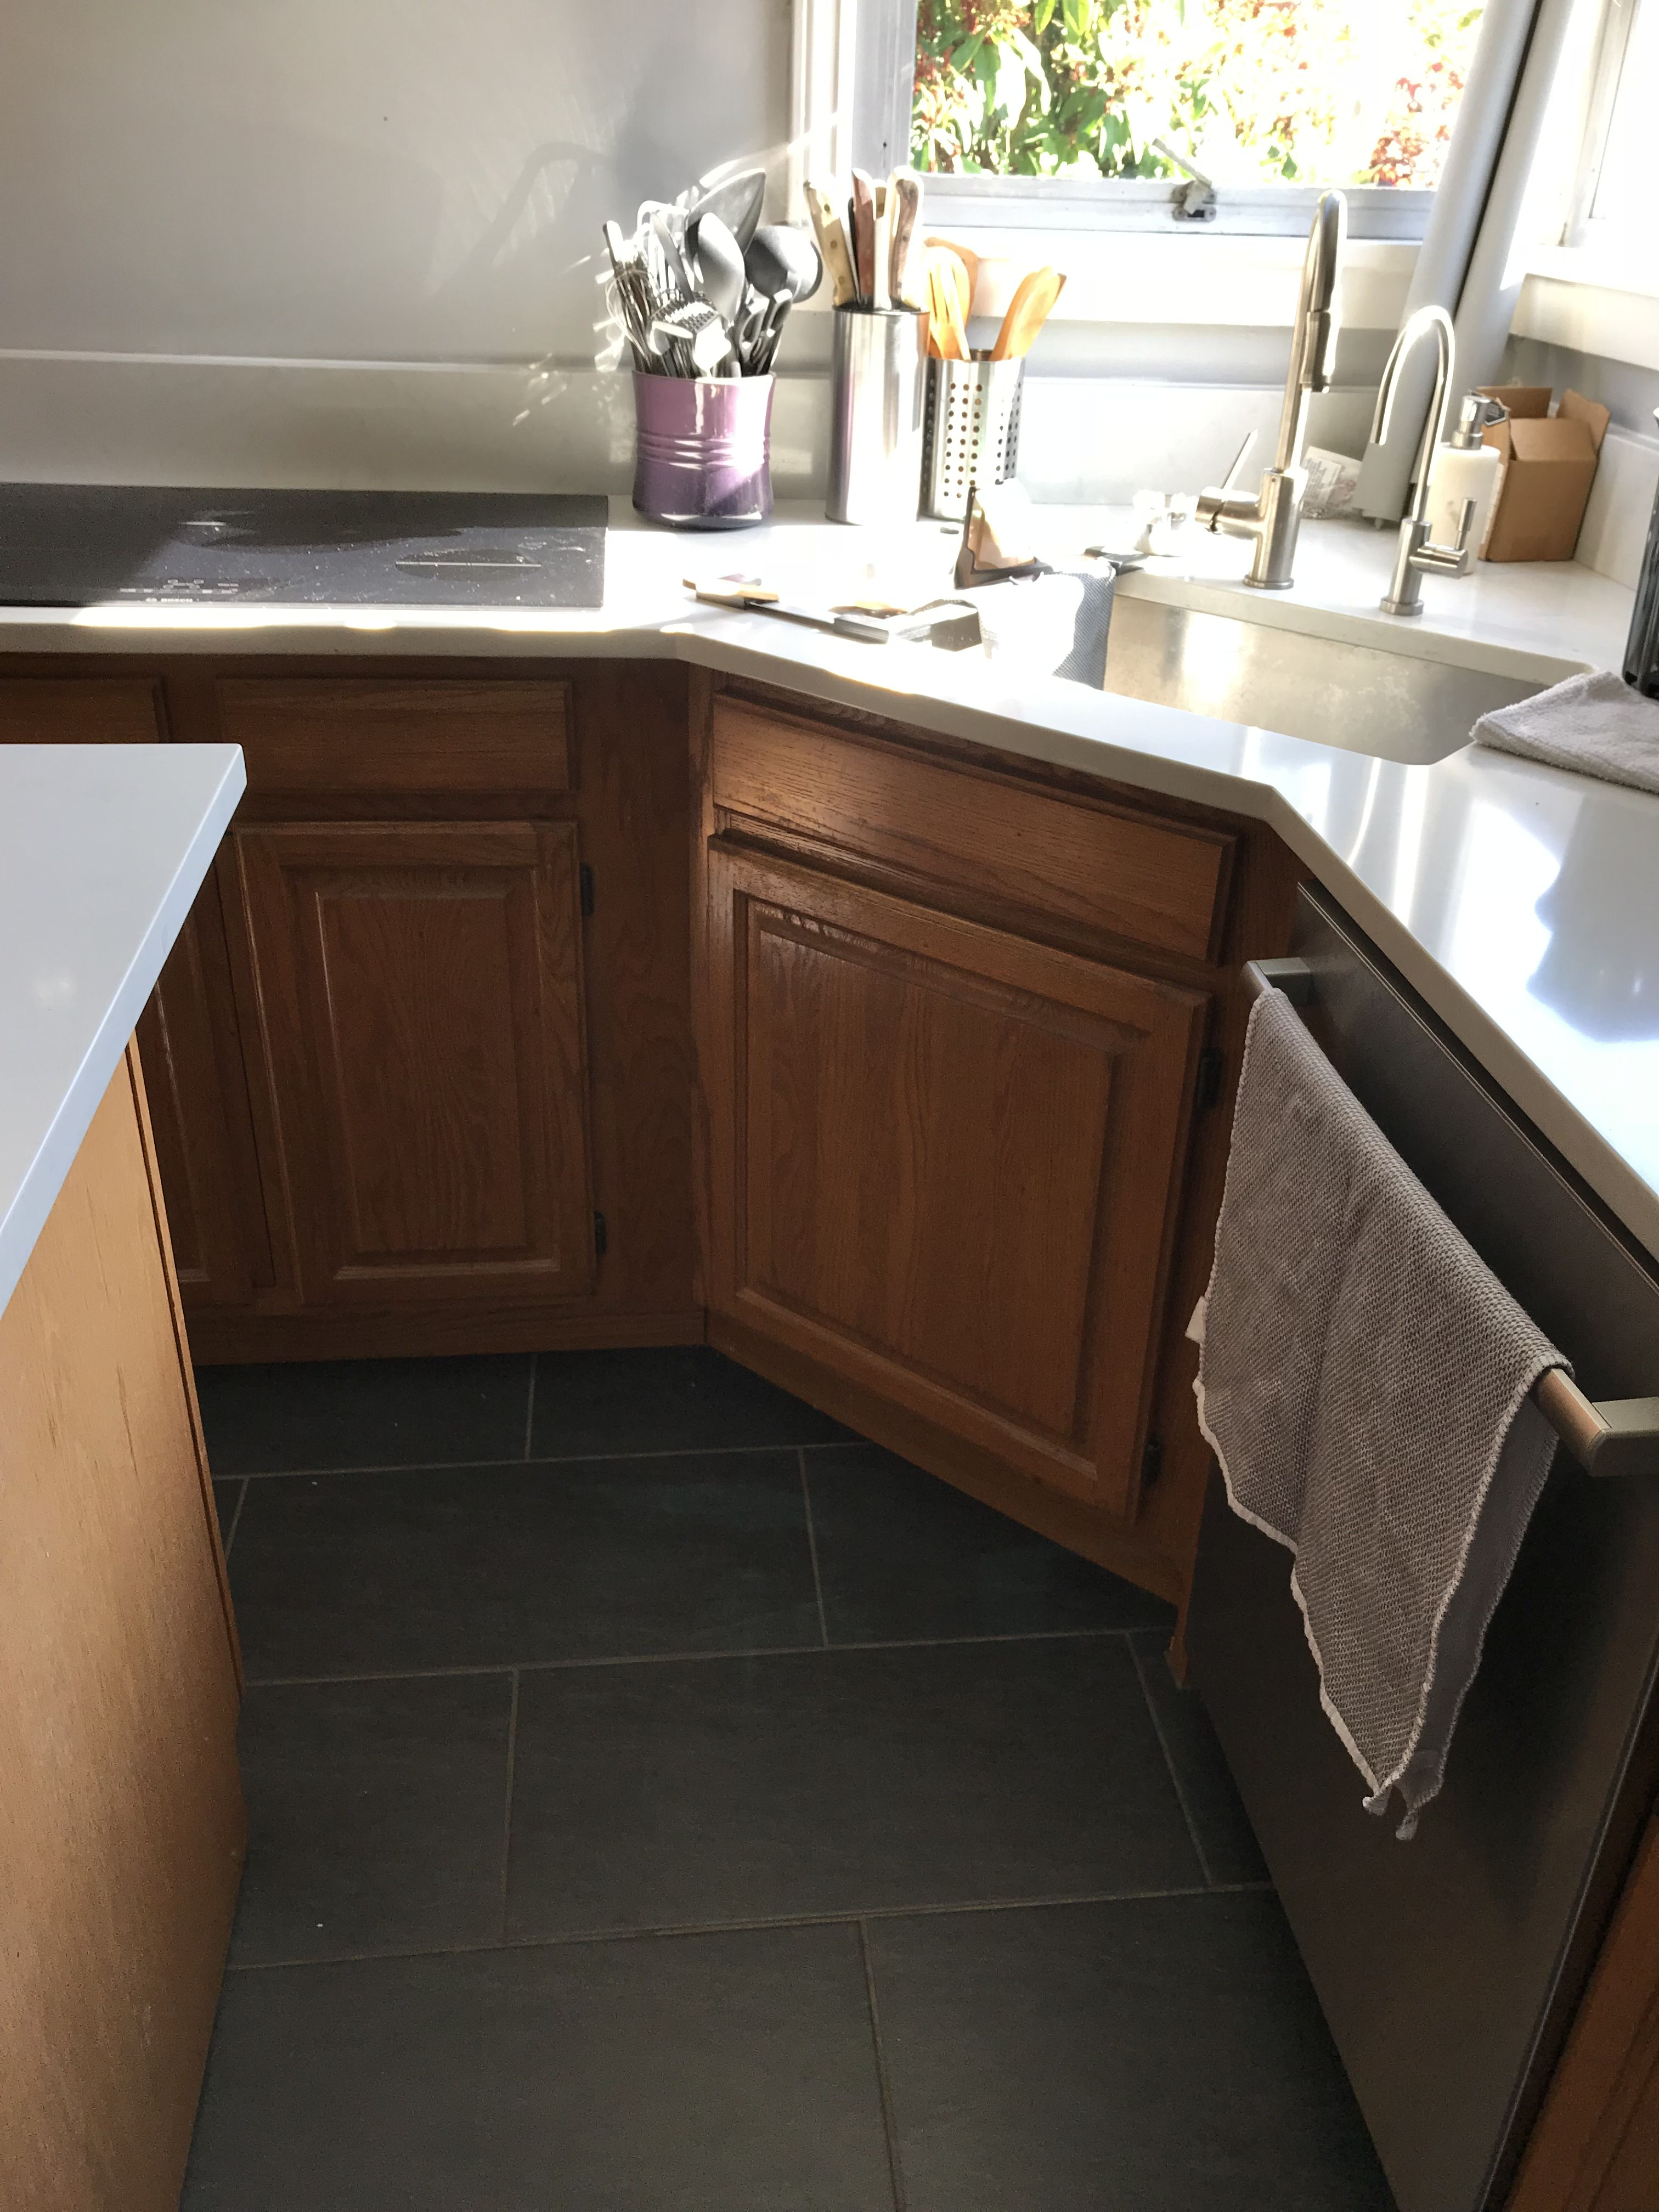 Cabs Under Sink Part Of Island Finish Kitchen Cabinets Started